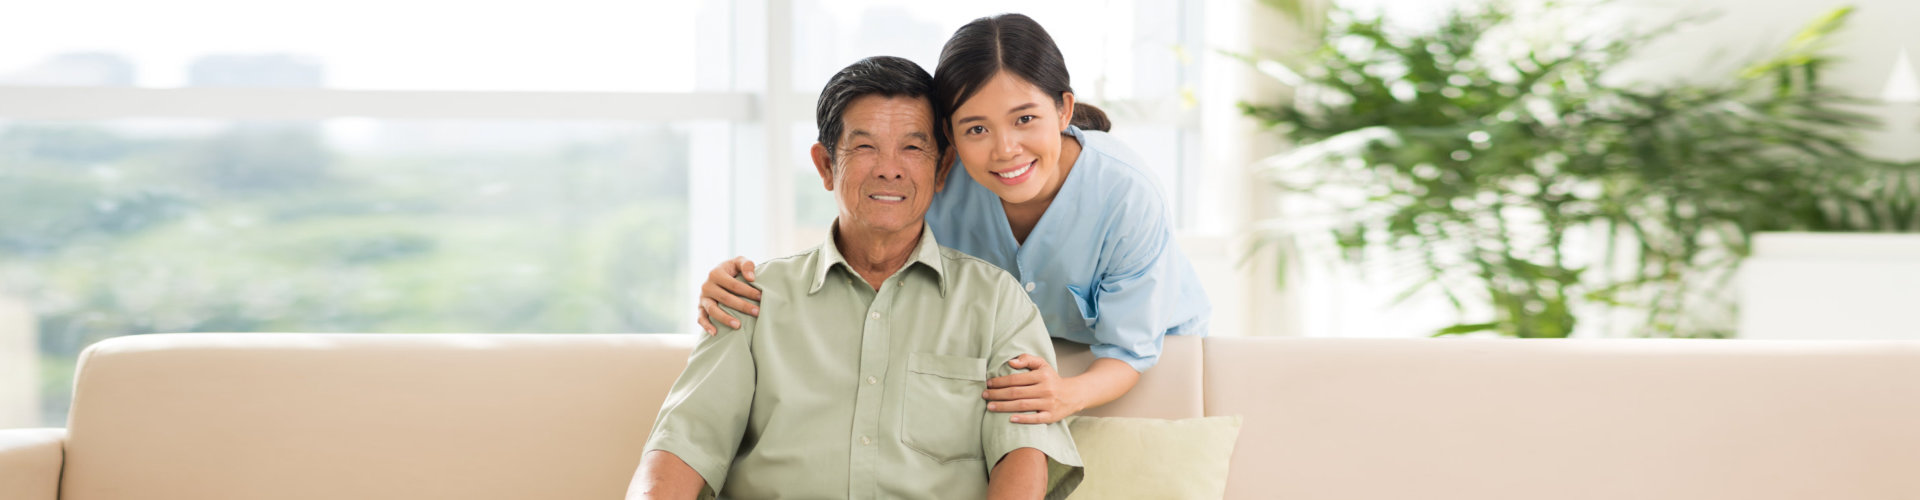 young lady and old man smiling